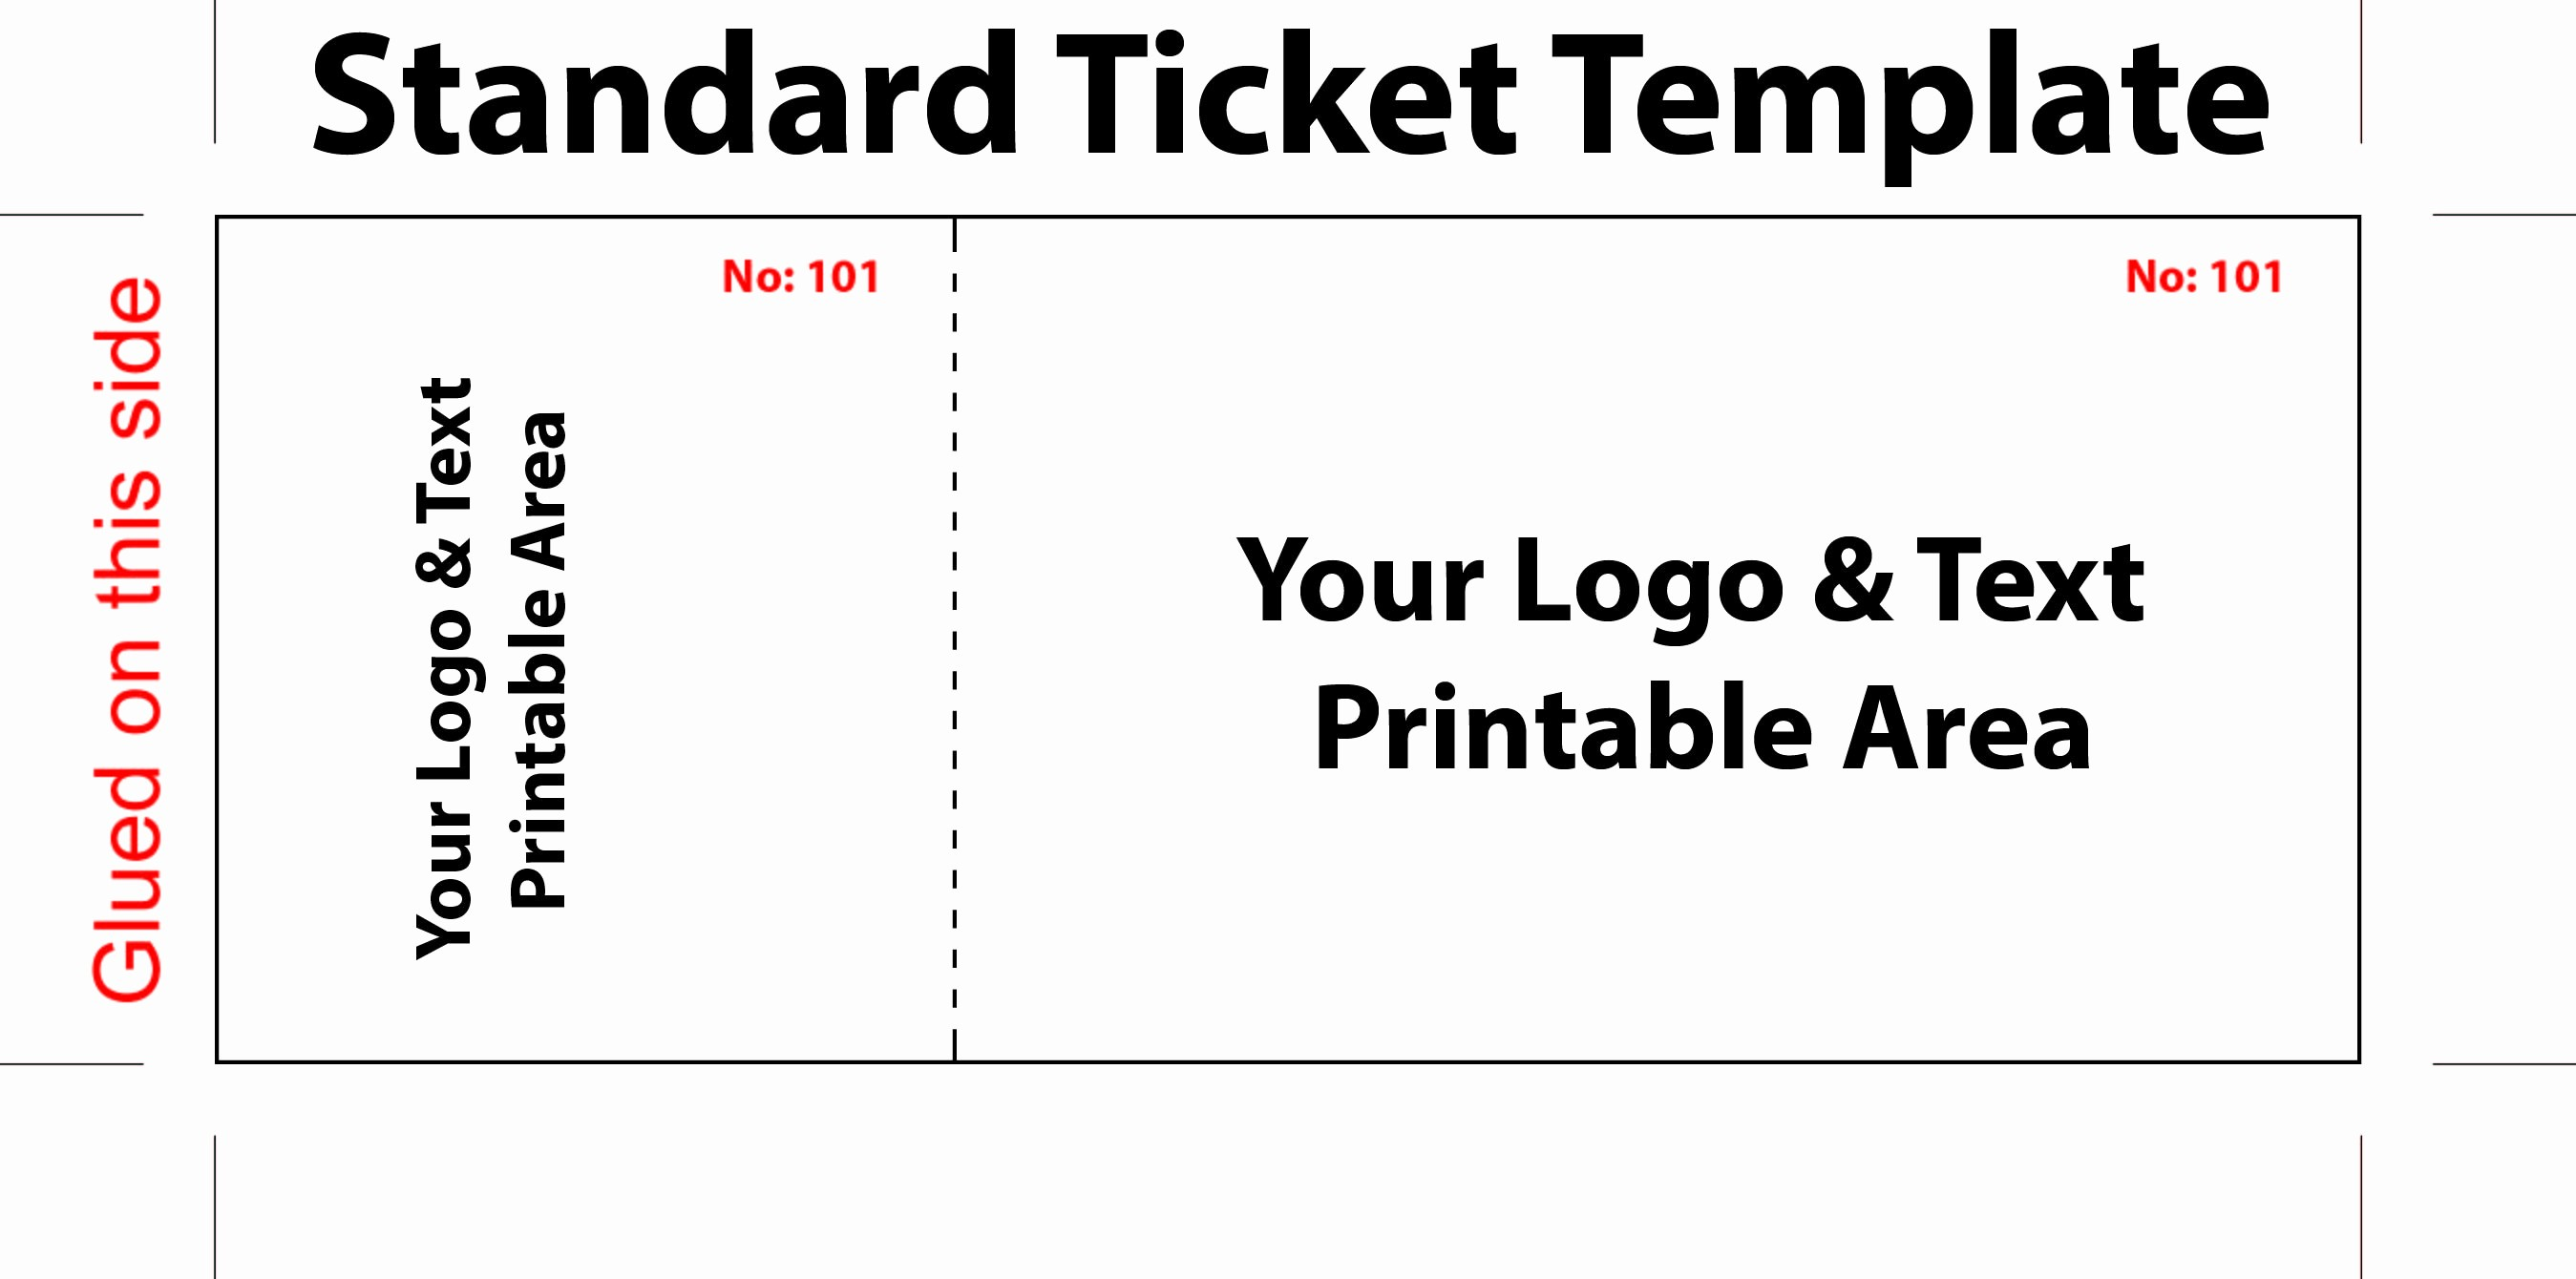 Create Your Own Tickets Template New 26 Cool Concert Ticket Template Examples for Your event